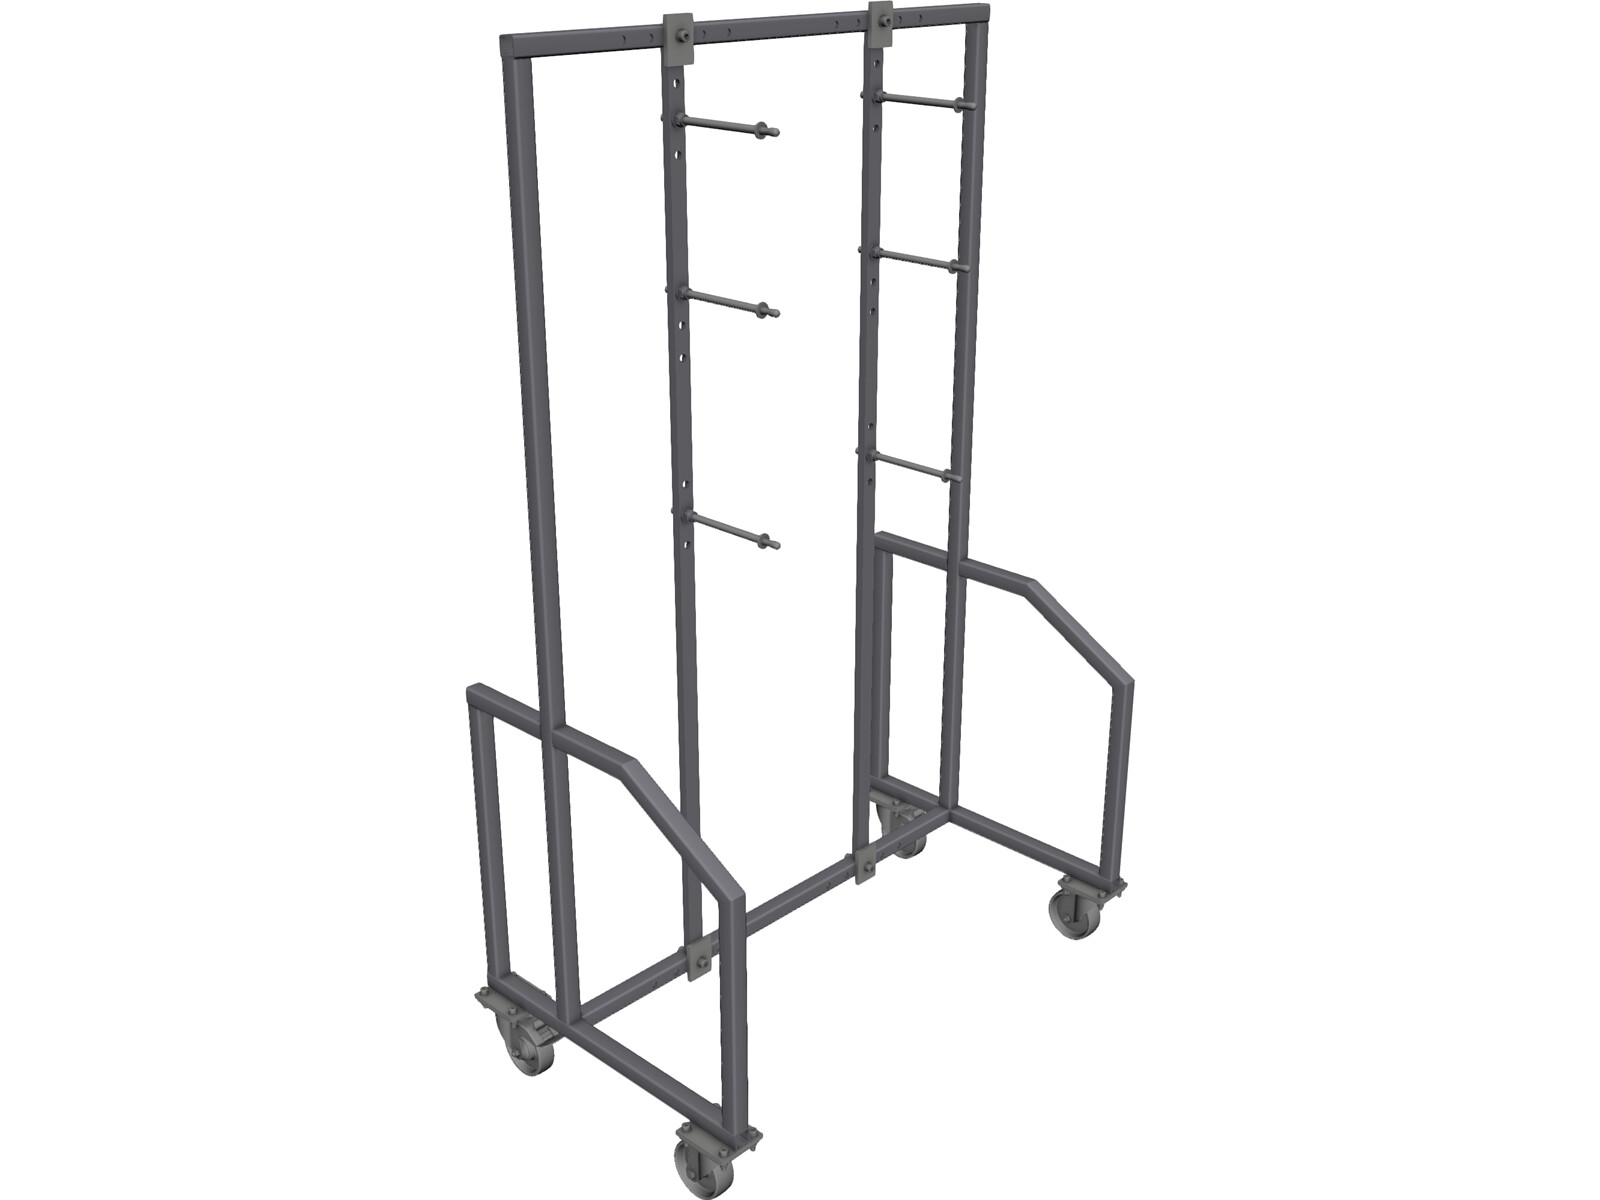 Fixture Shelve Rack 3D CAD Model